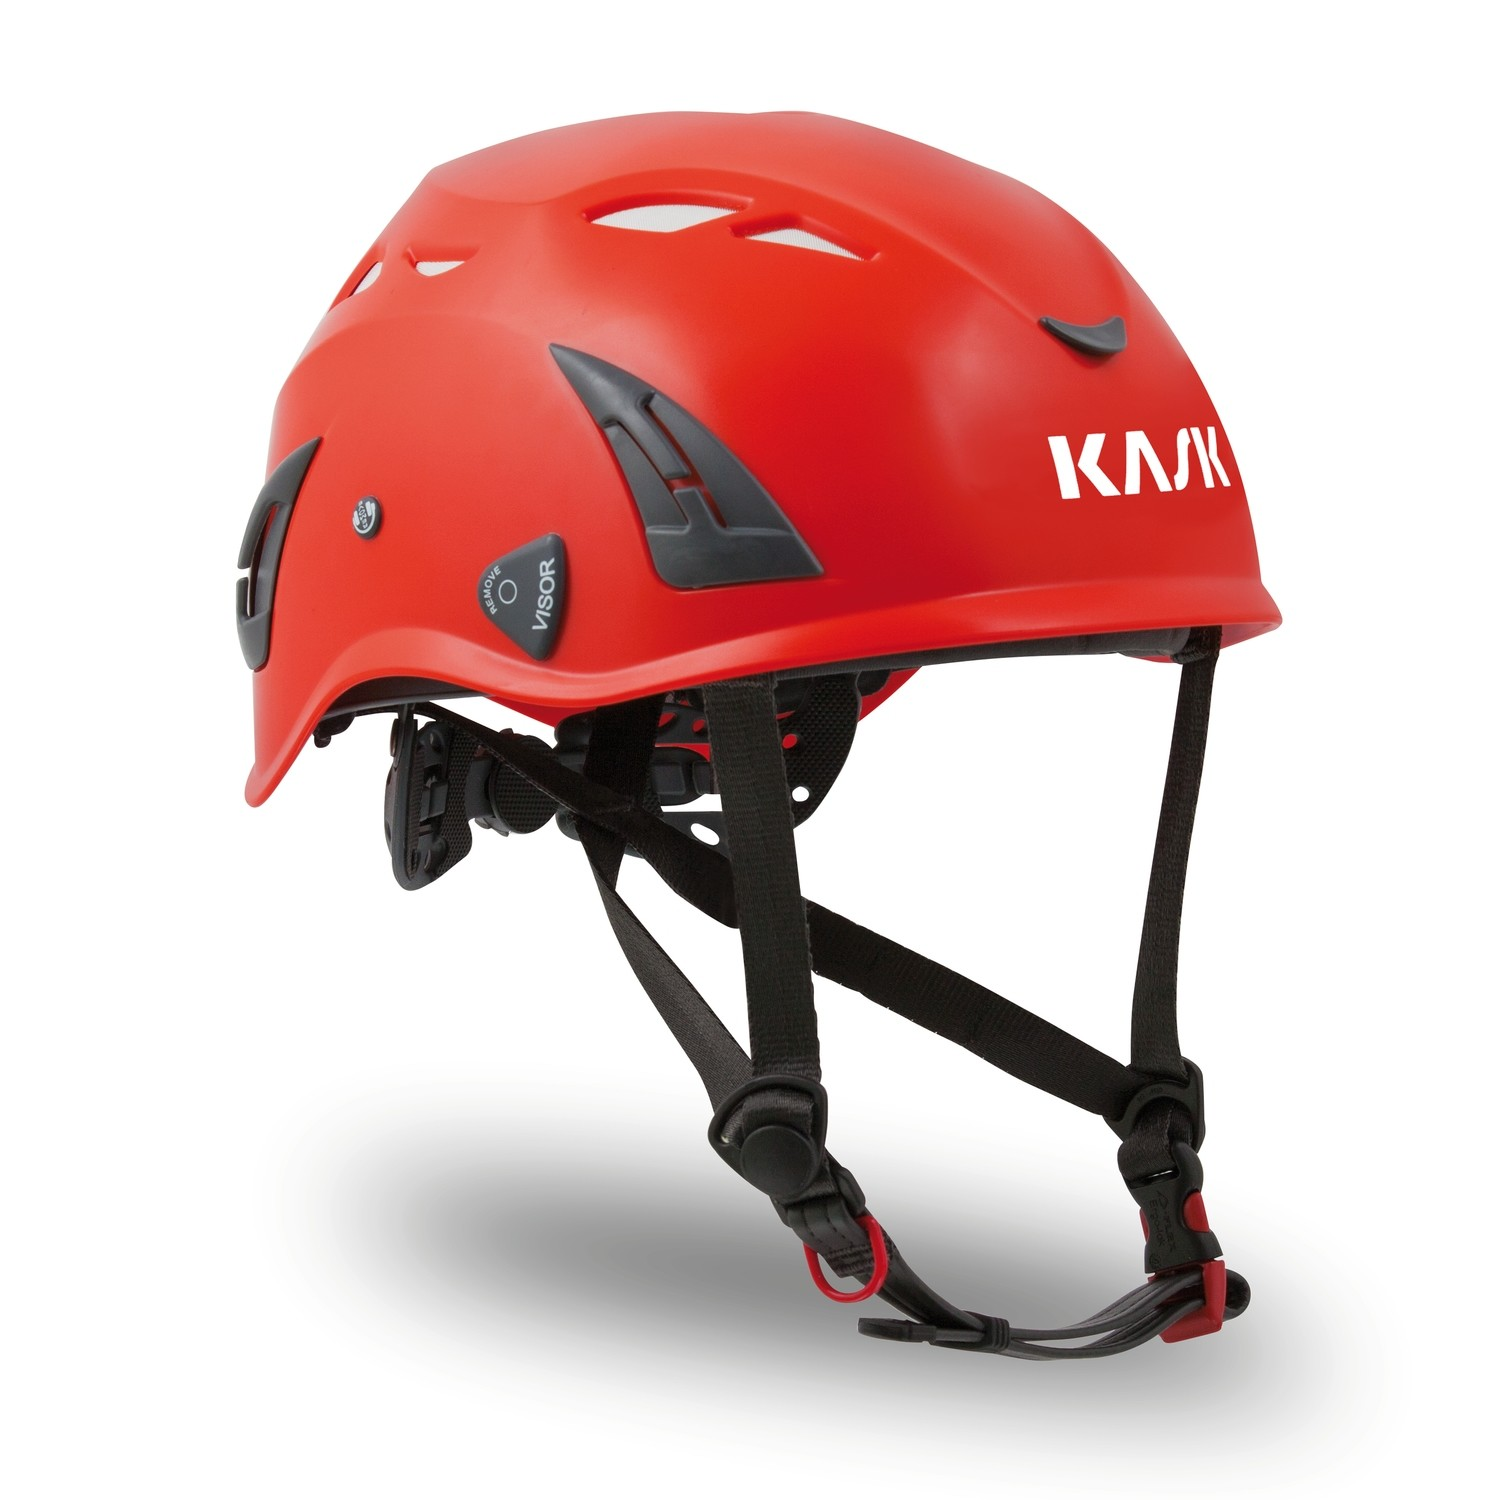 Kask Superplasma Helmet — Red